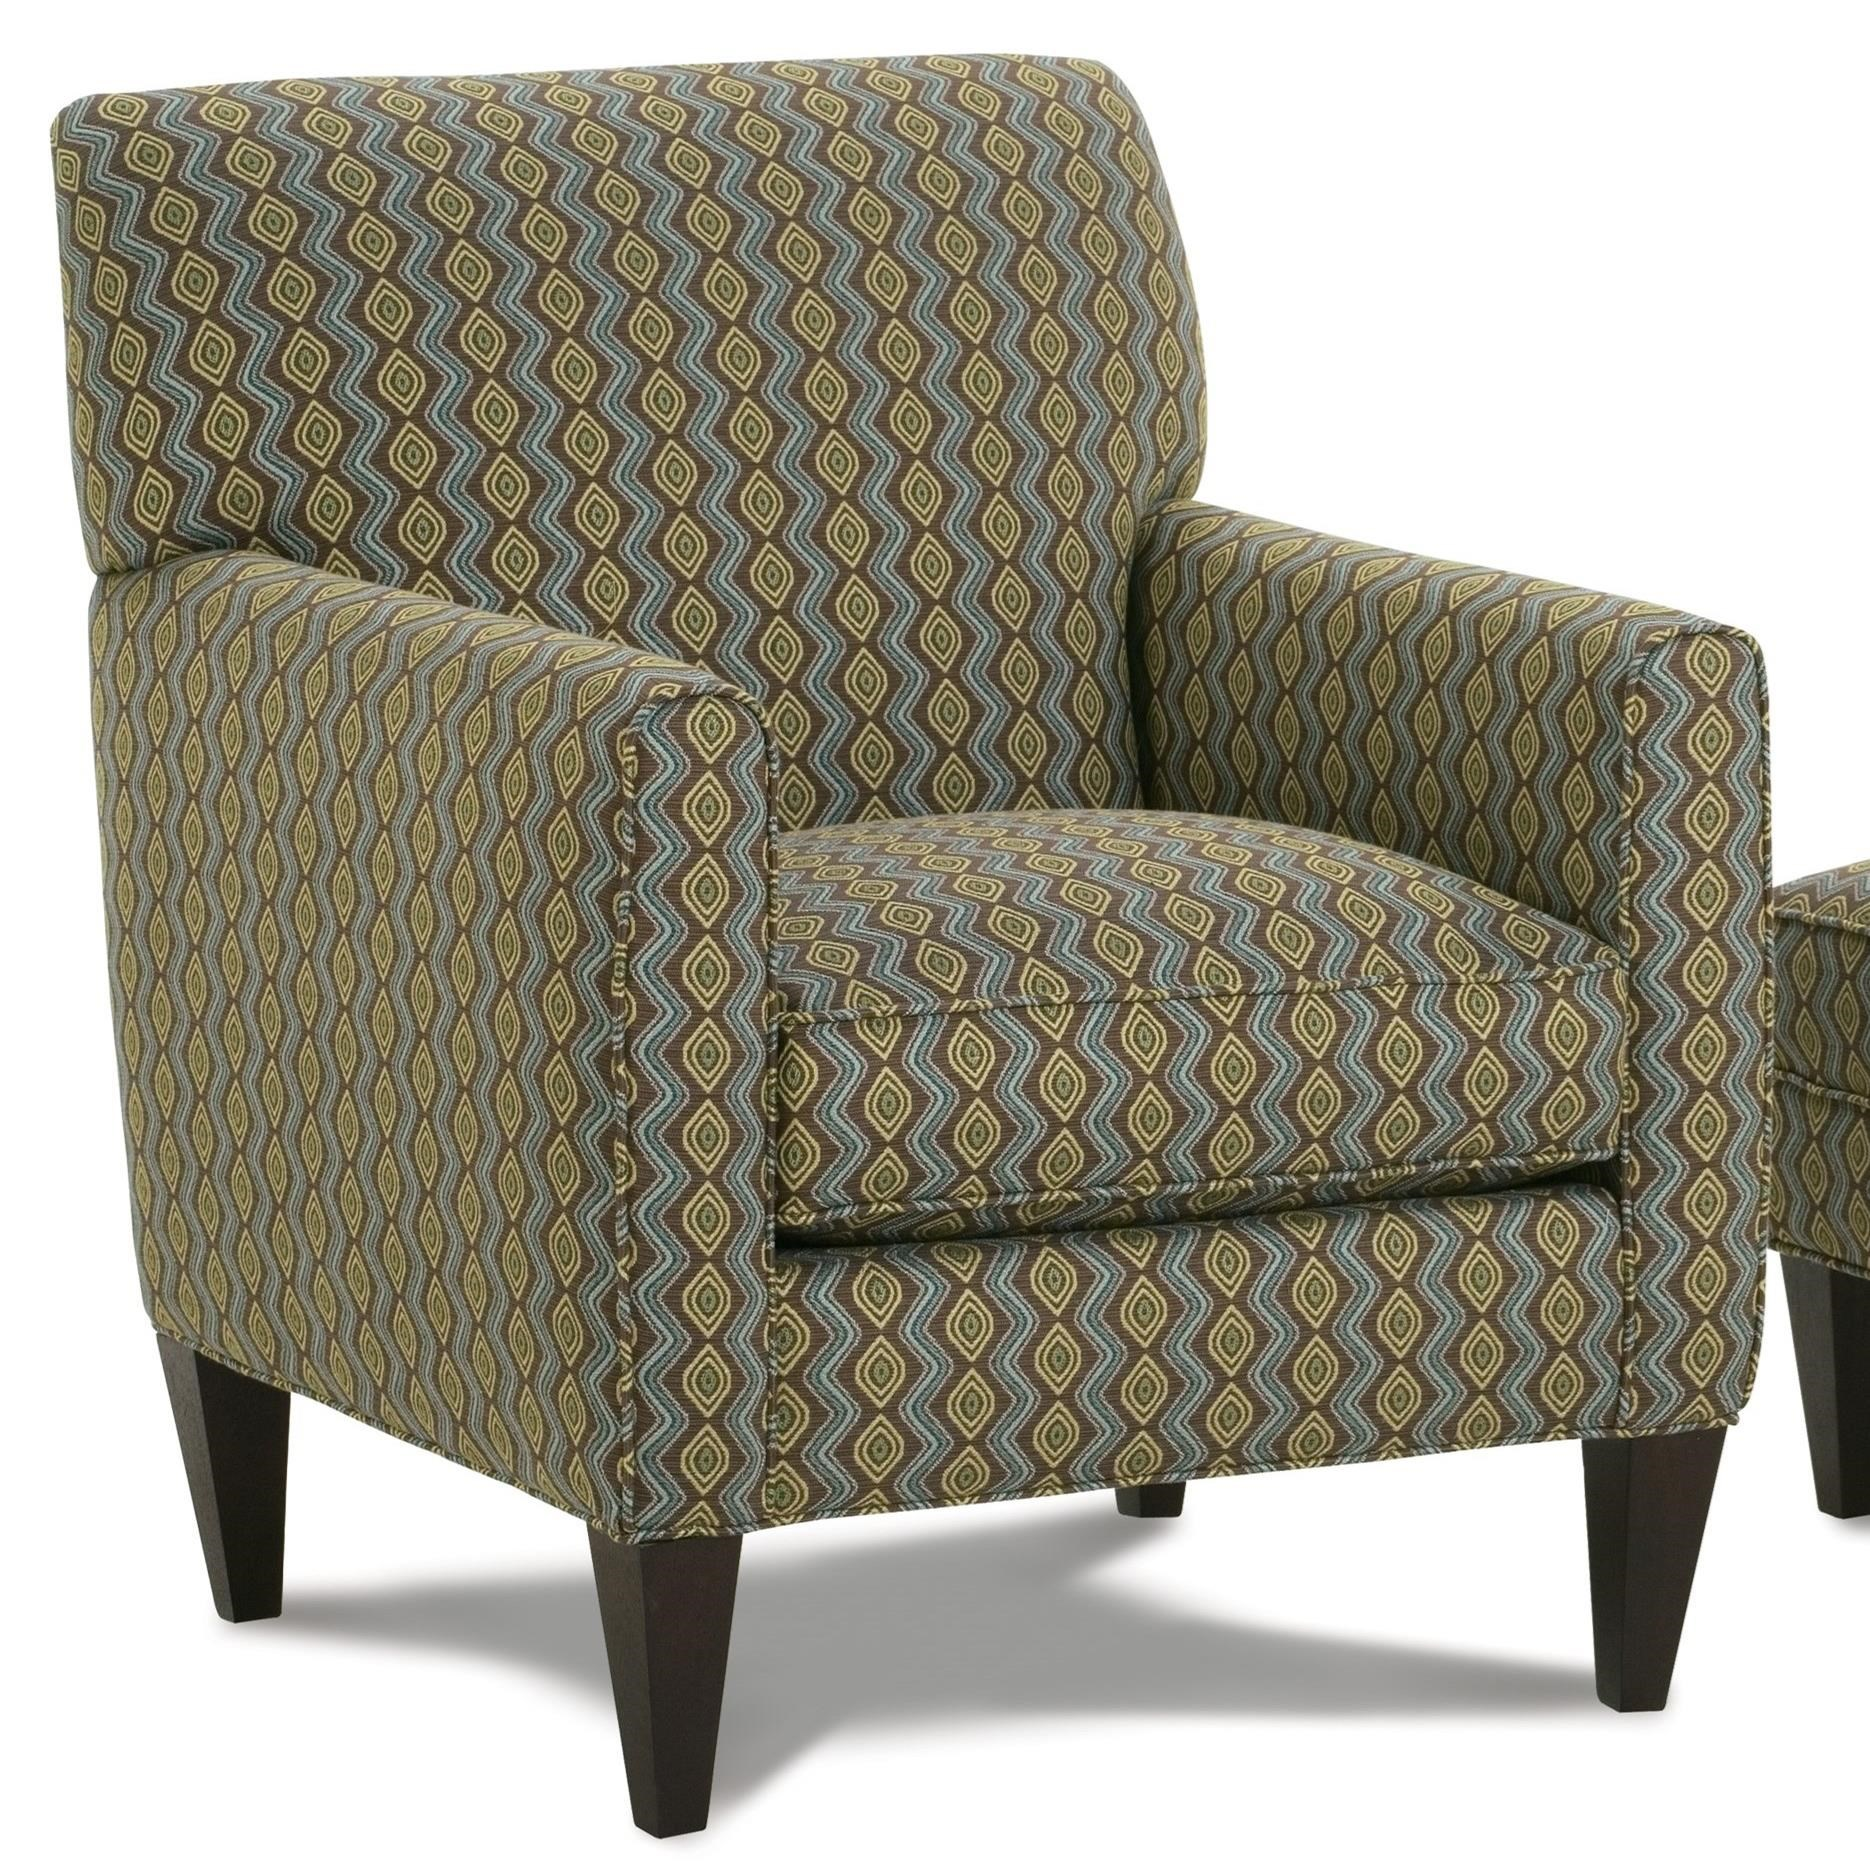 Chairs and Accents Willet Chair by Rowe at Saugerties Furniture Mart